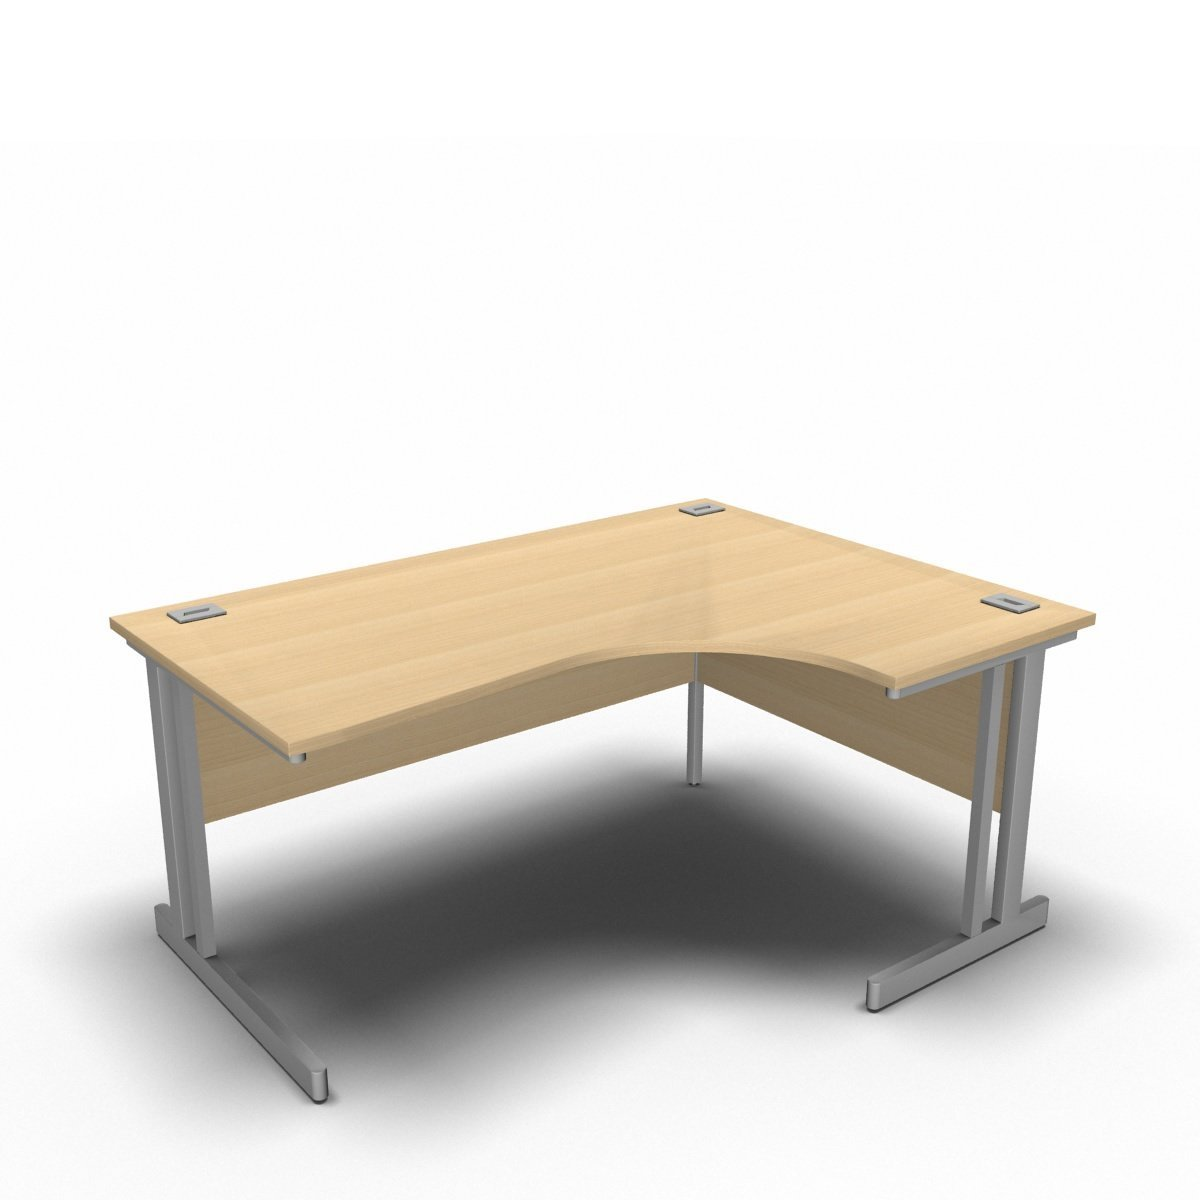 Desk 1600 x 1200 x 800 x 600mm / Right / Maple Synergy Crescent Desks